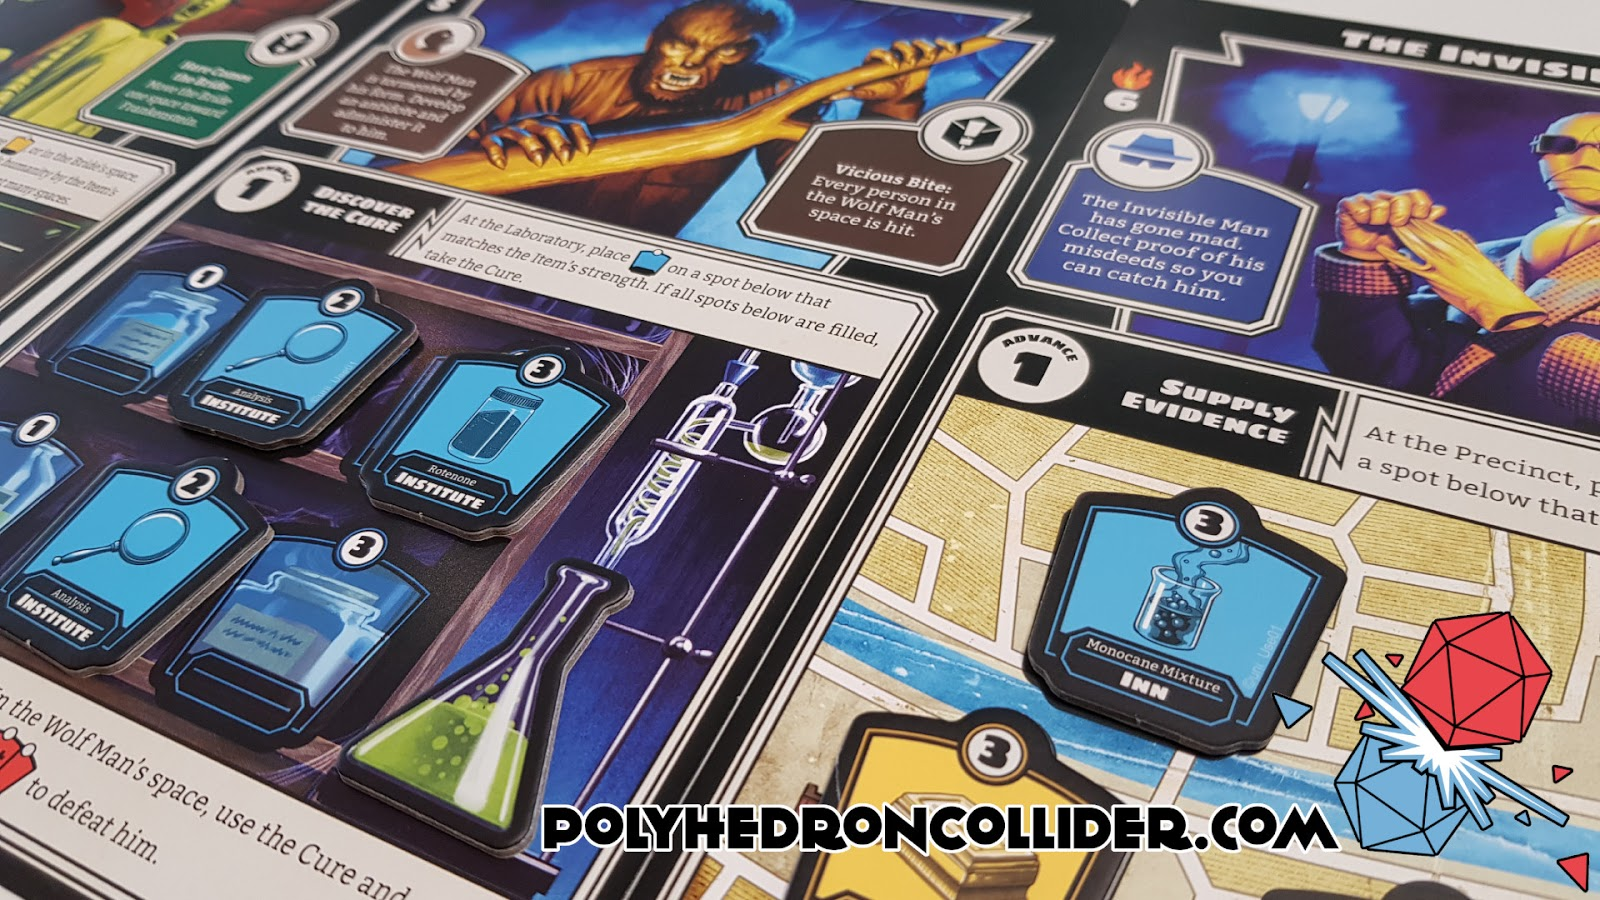 Polyhedron Collider Horrified Board Game Review - Defeating the Monsters